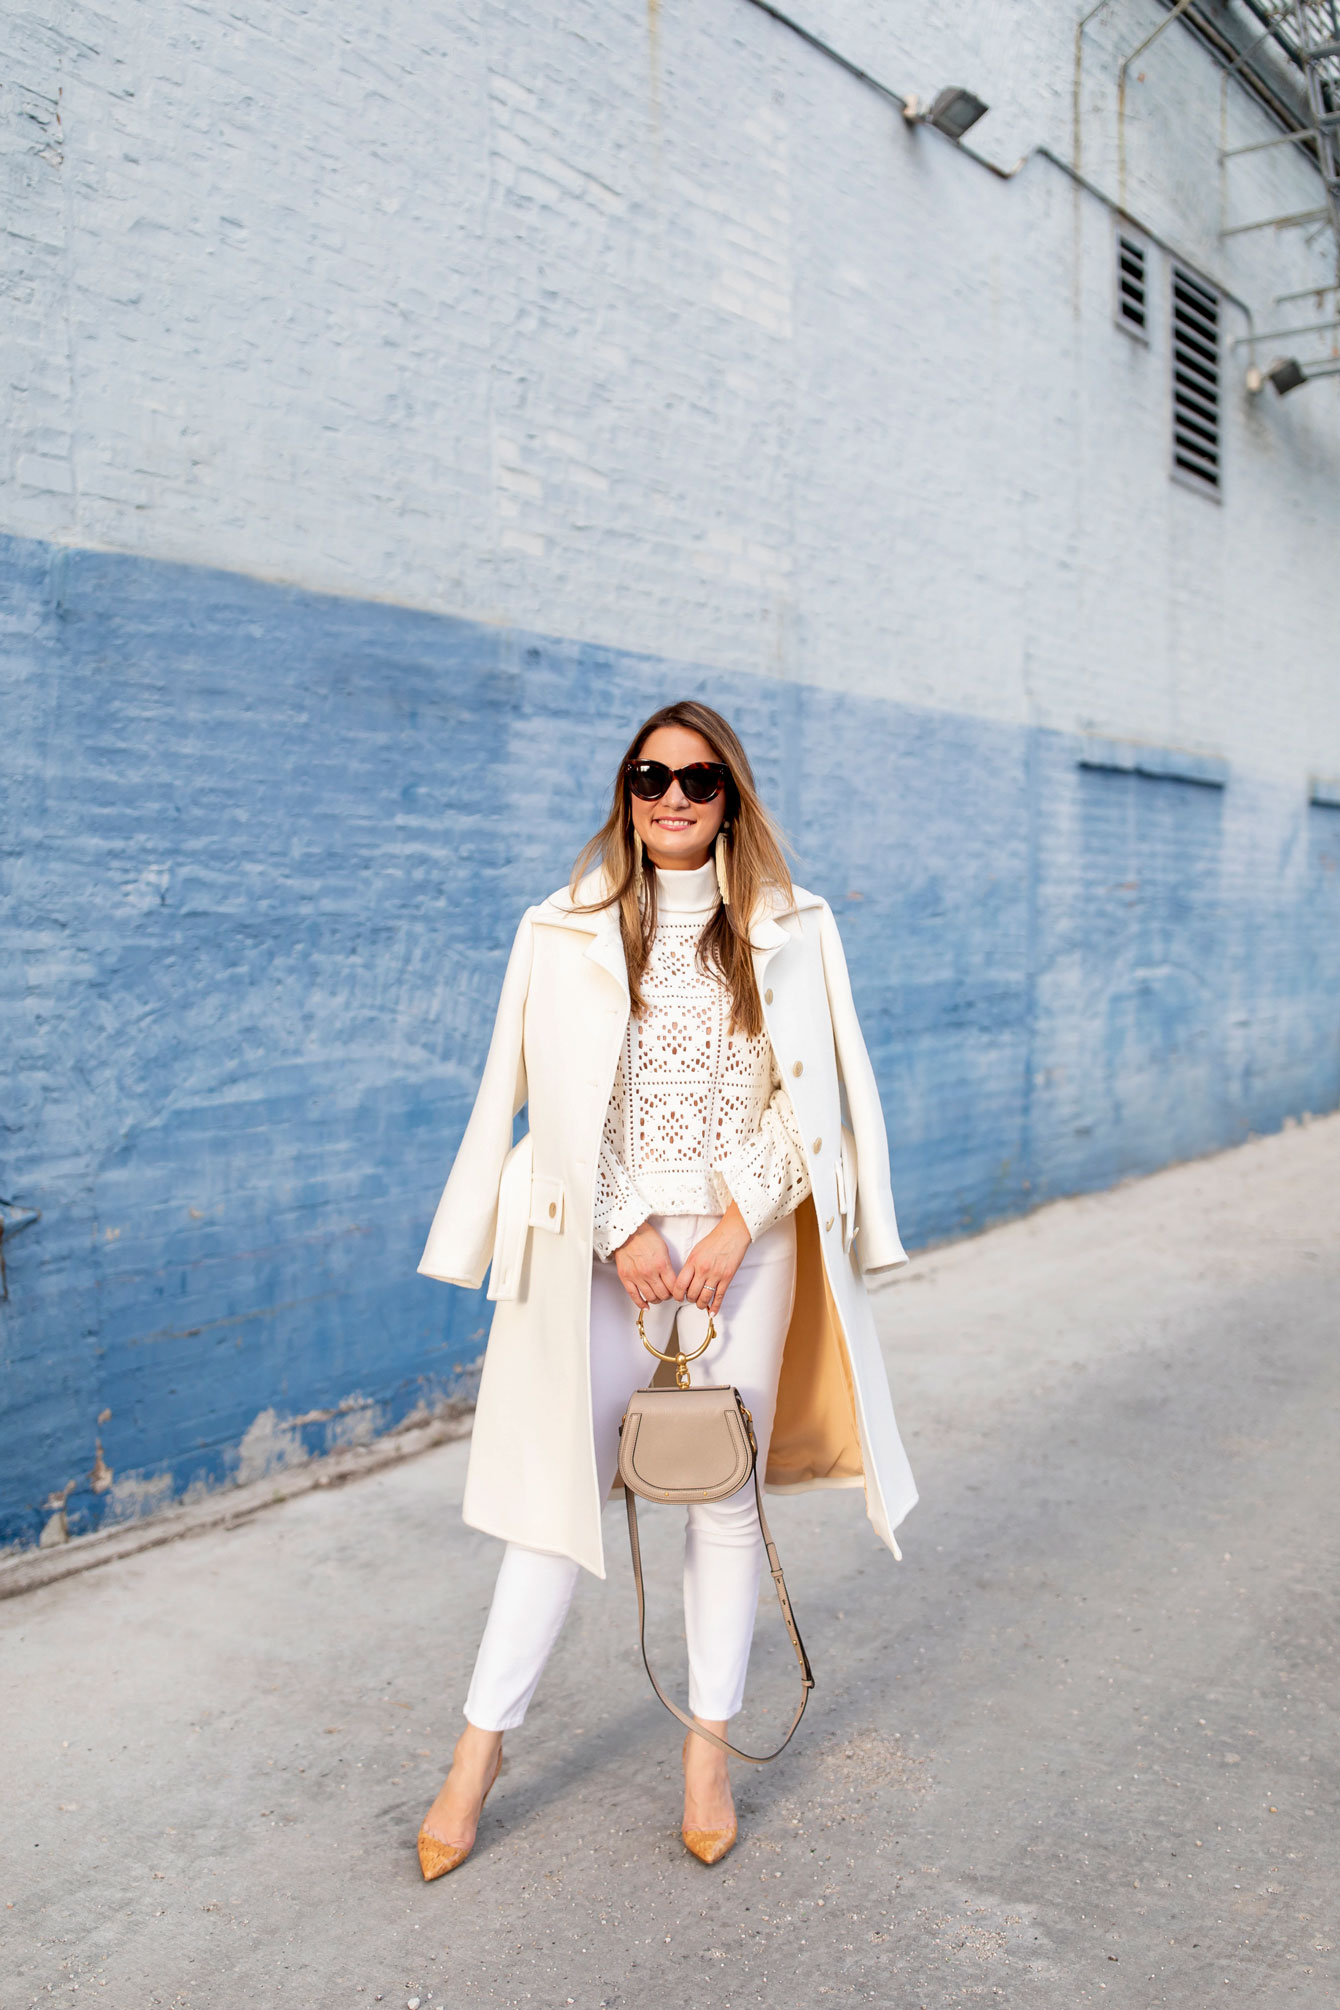 Styling an Ivory Coat